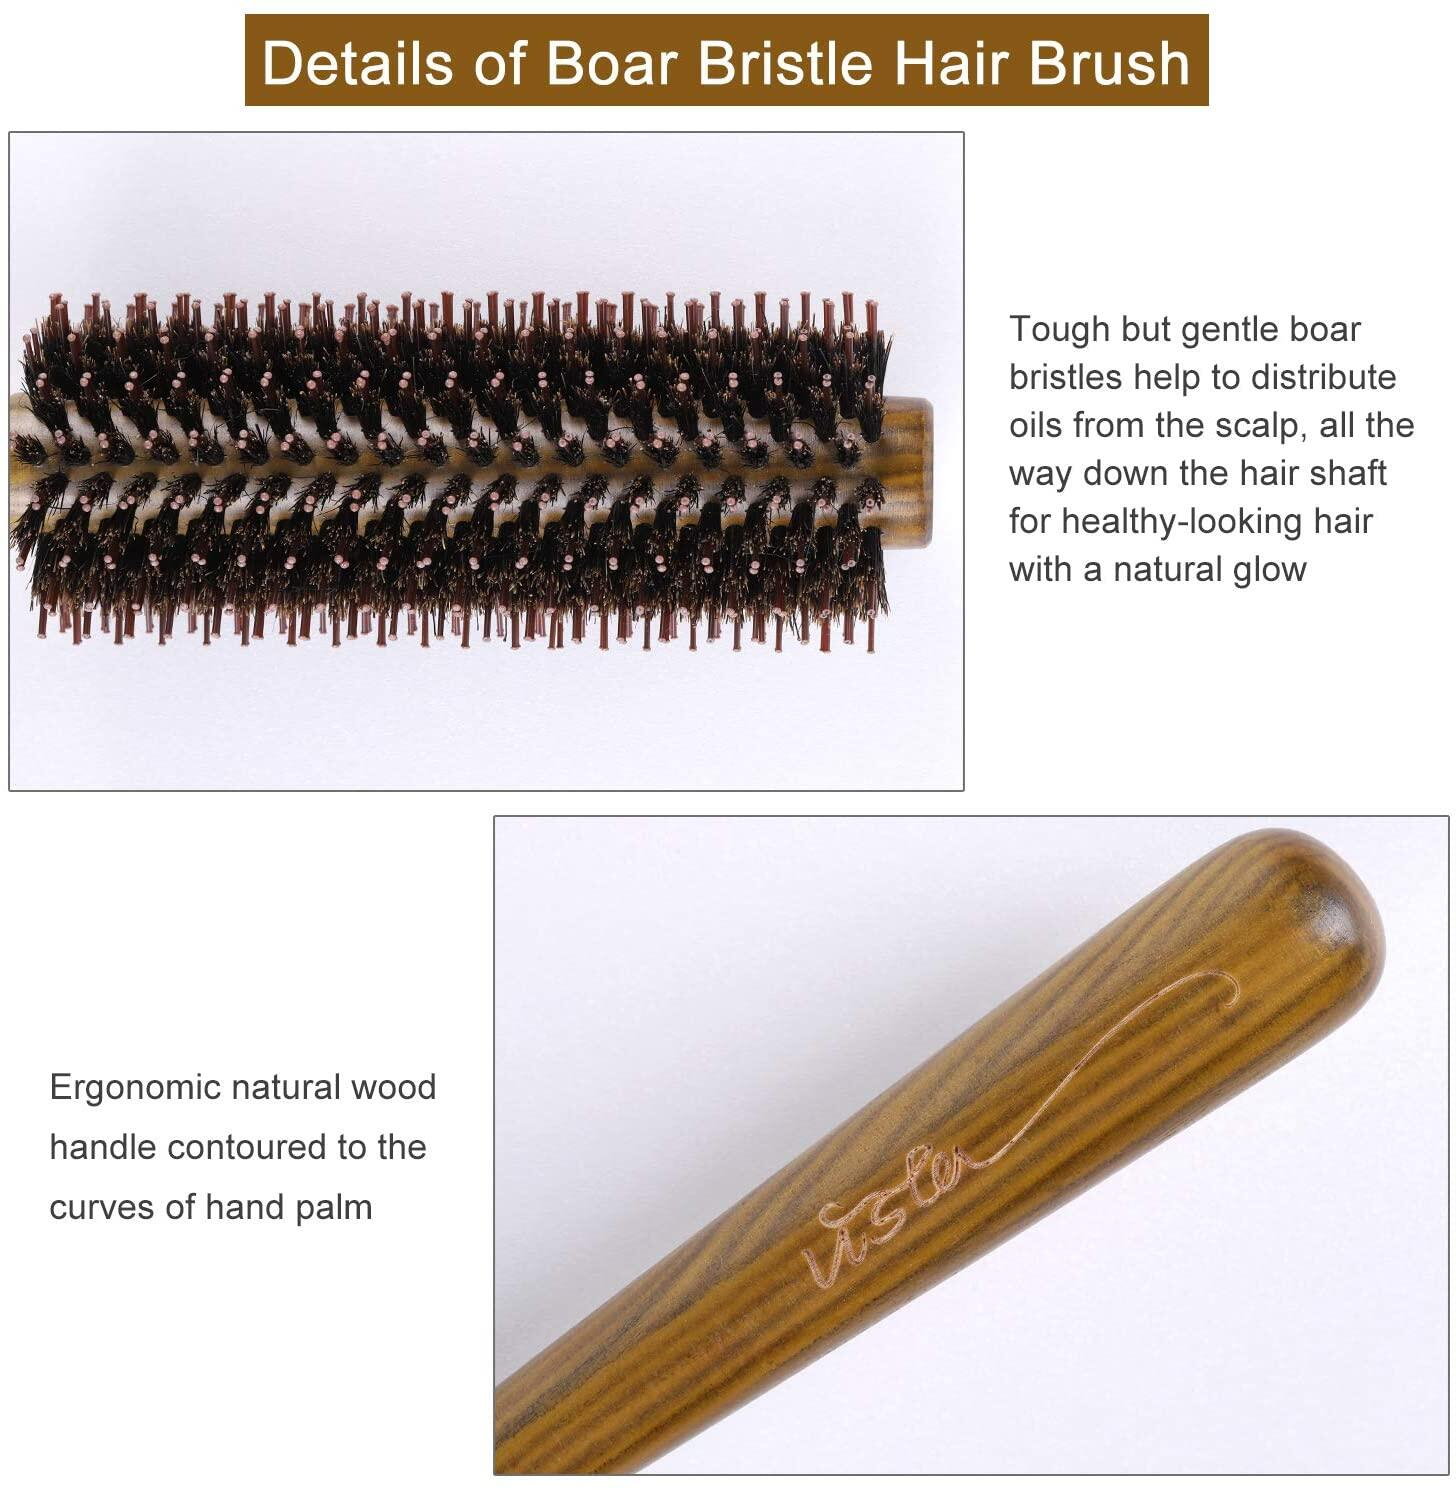 Boar Bristle Hair Brush, Vista Round Hair Brush Wooden Handle Anti Static Hairbrush for Hair Styling, Drying, Curling Boar Bristle Hairbrush Vista Round Hair Brush Wooden Handle Anti Static Hairbrush for Hair Styling, Drying, Curling hair brush